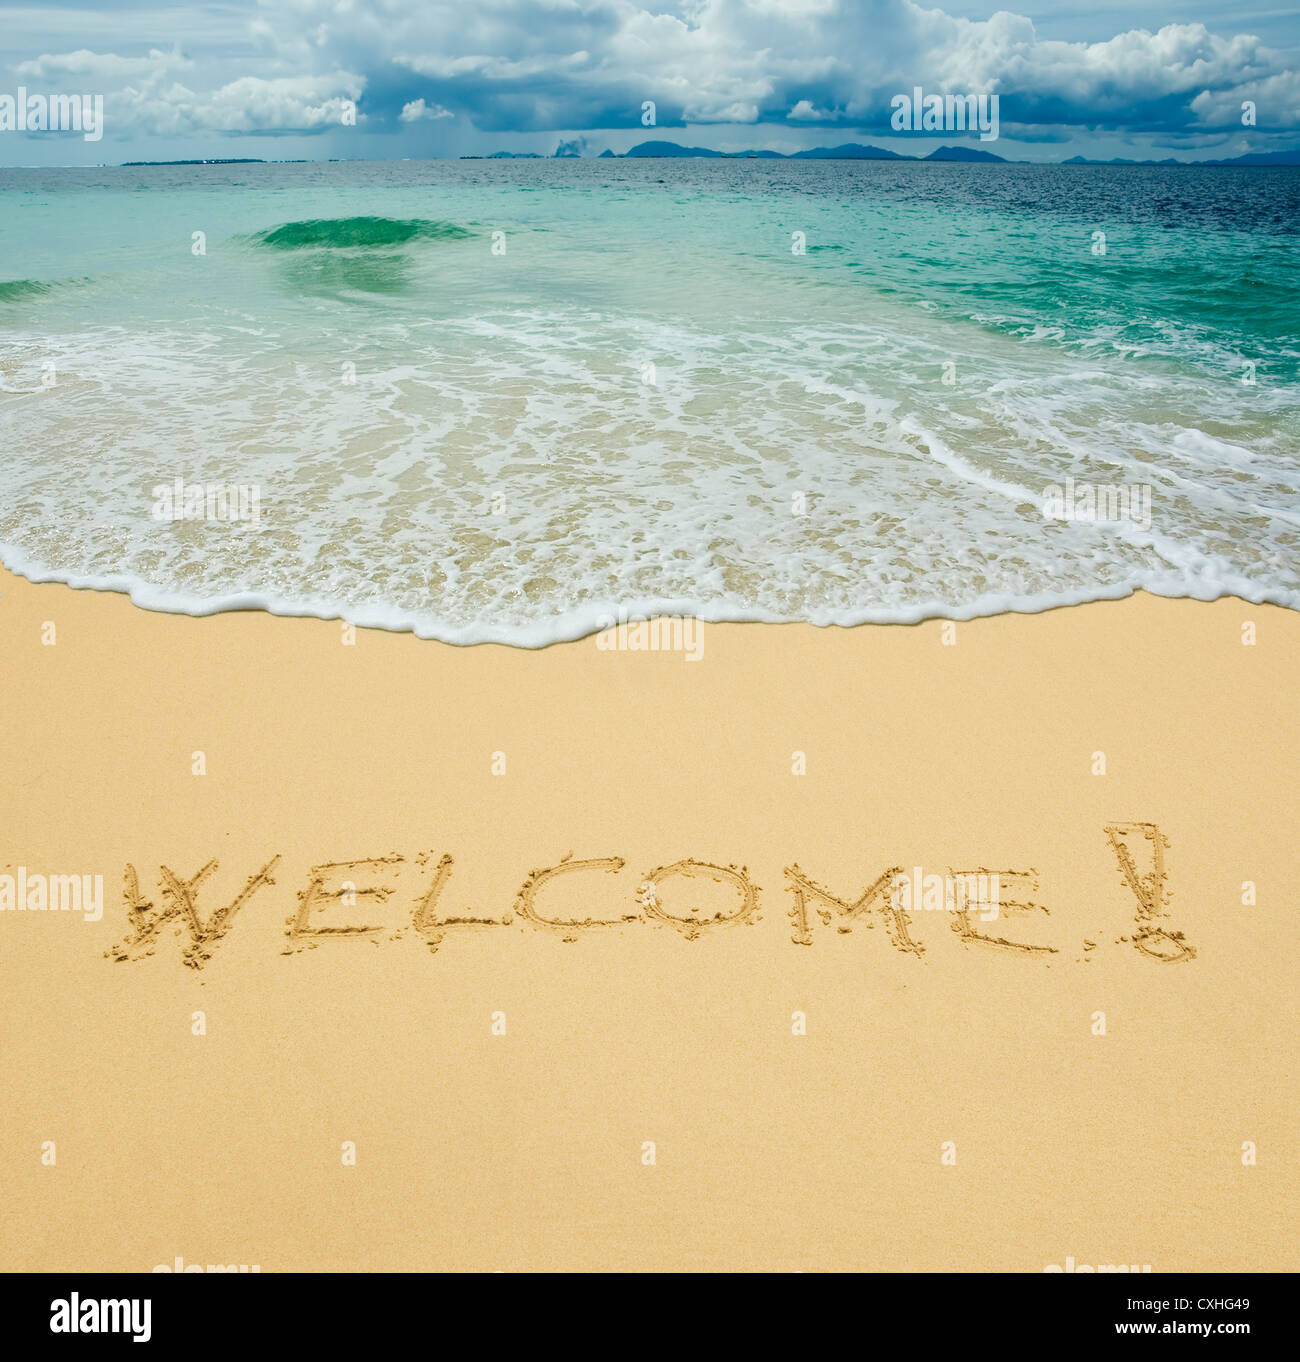 welcome written in a sandy tropical beach - Stock Image